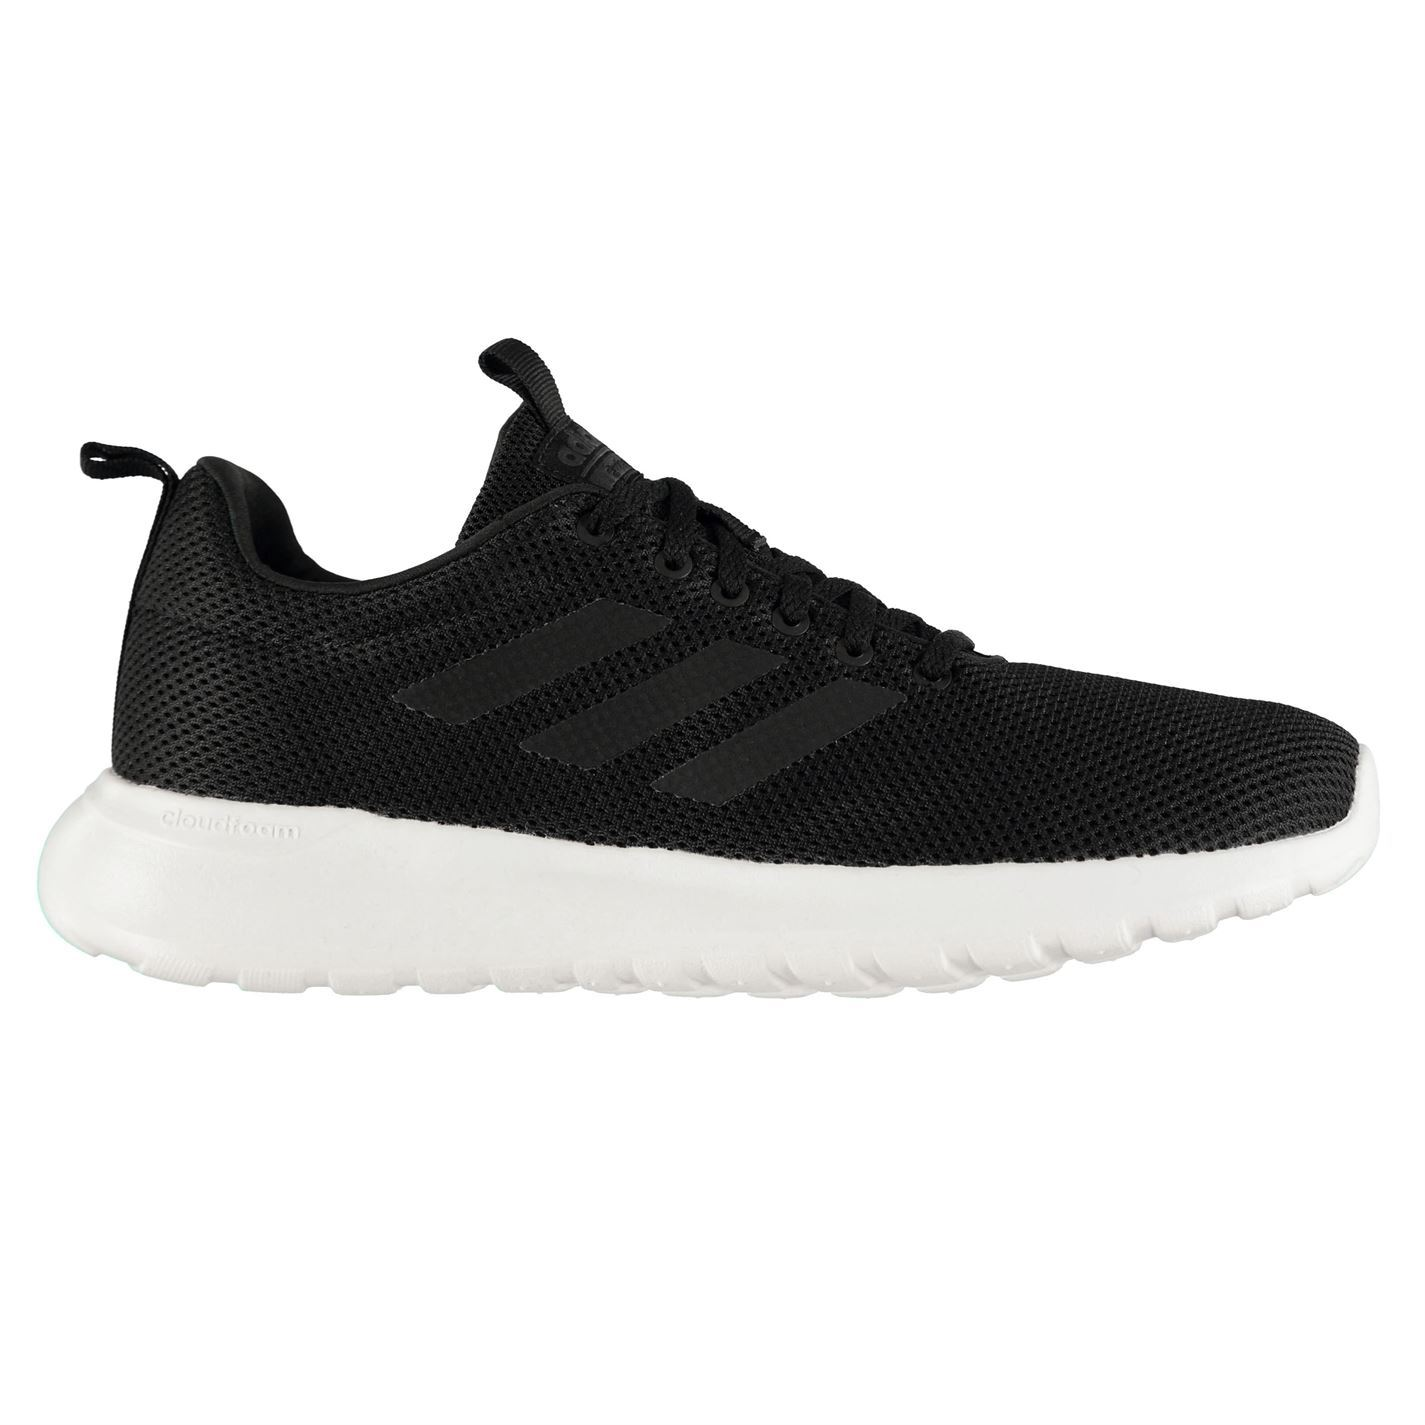 Details about adidas Cloudfoam Lite Racer Clean Running Shoes Mens Fitness  Trainers Sneakers